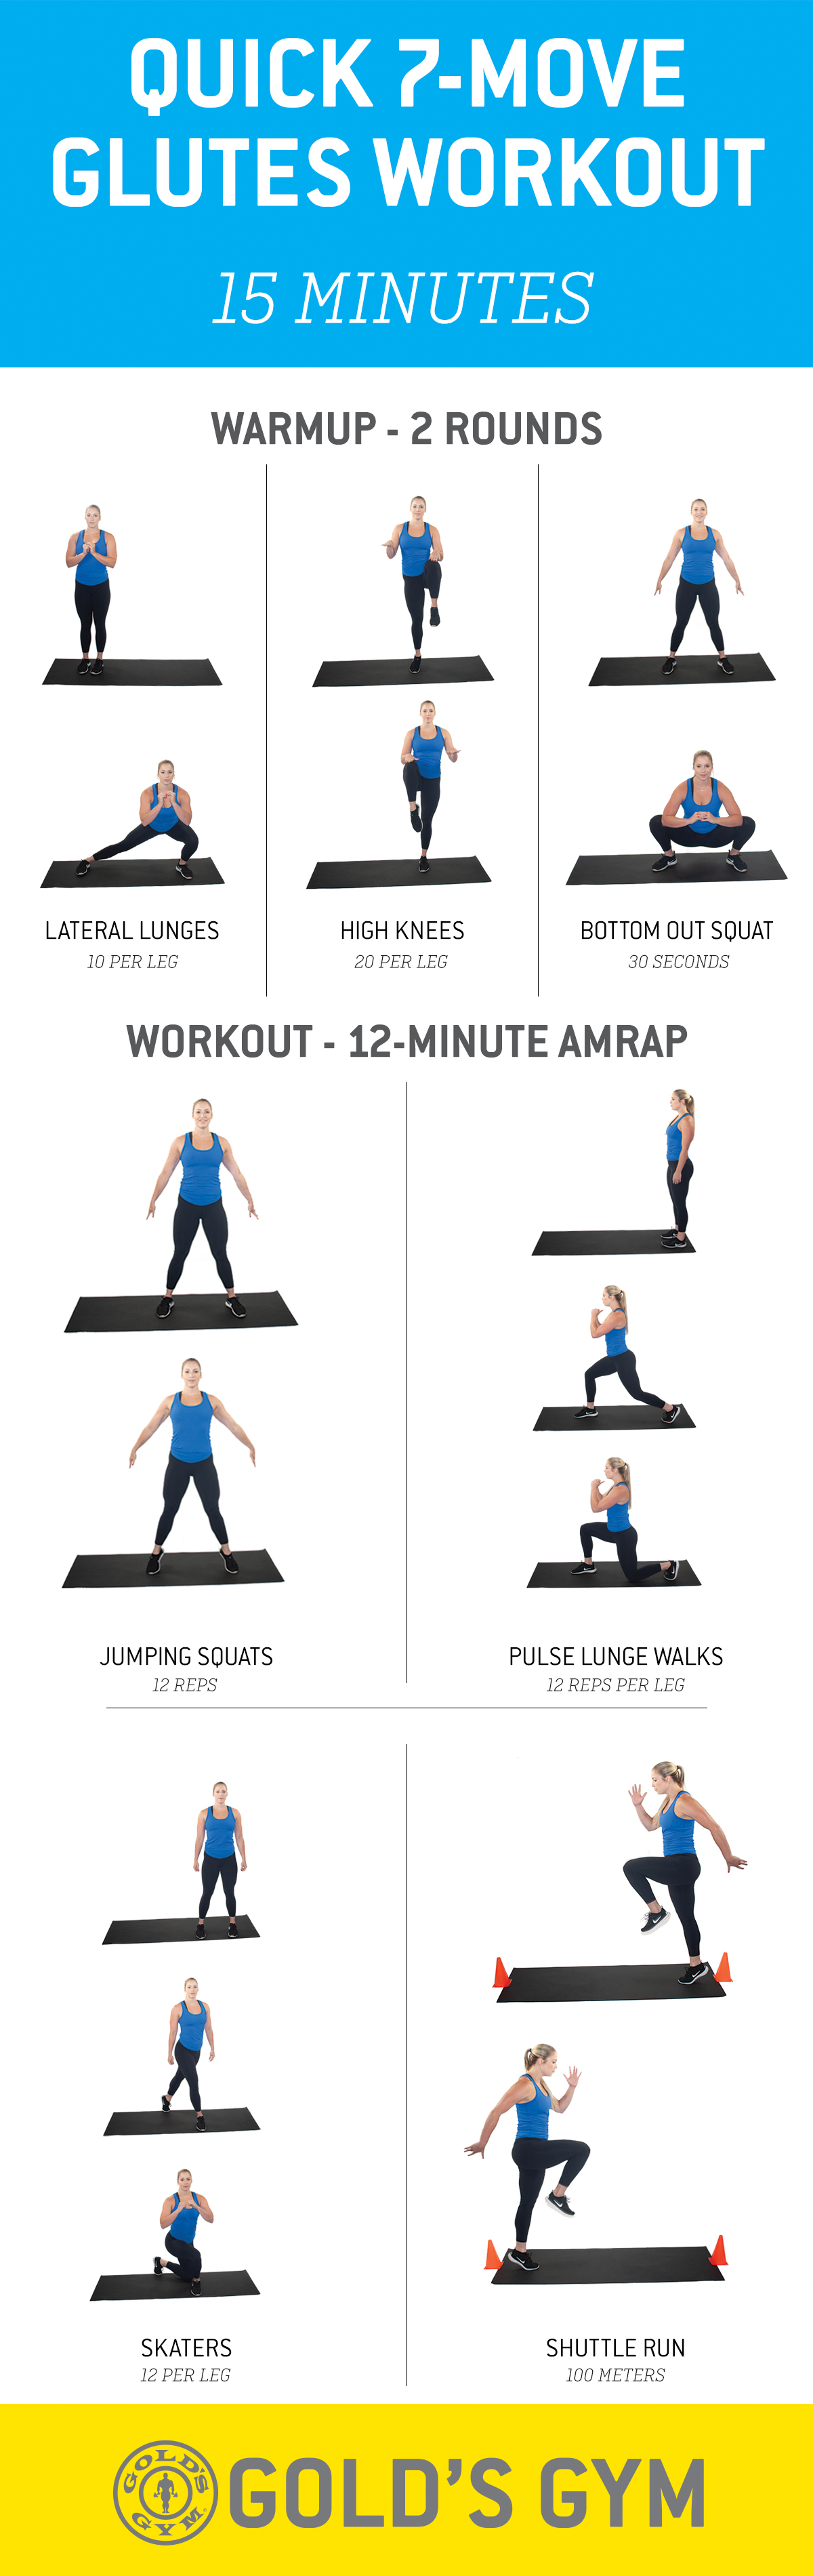 Legs and glute workout with lateral lunges, high knees, bottom out squat, jumping squats, pulse lunge walks, skaters and shuttle runs.